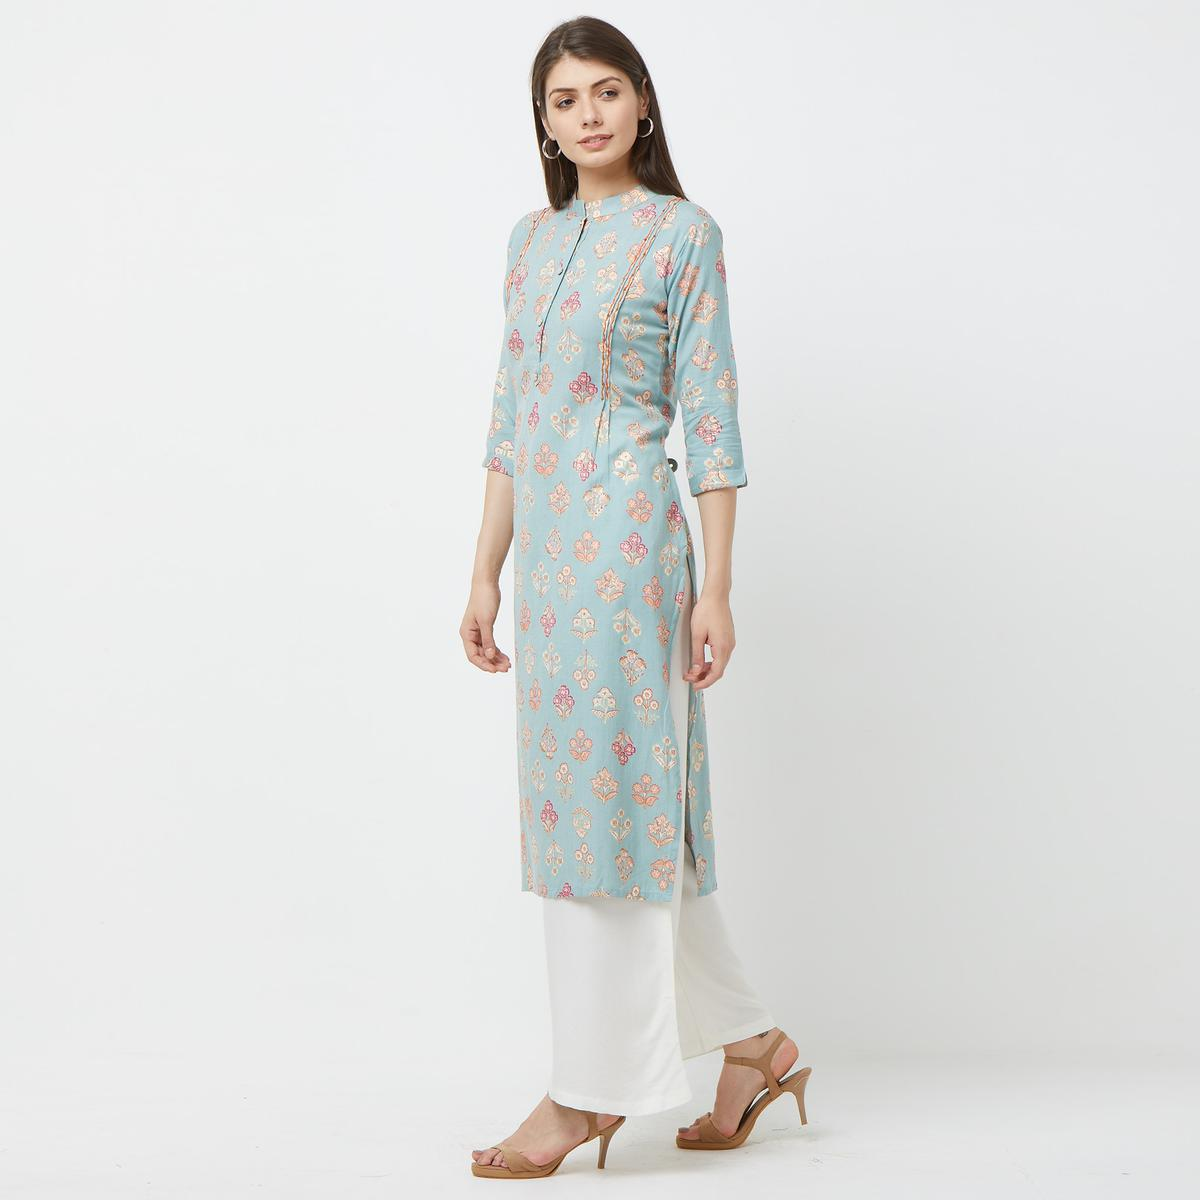 Pleasance Light Blue Colored Partywear Embroidered Cotton Kurti-Palazzo Set